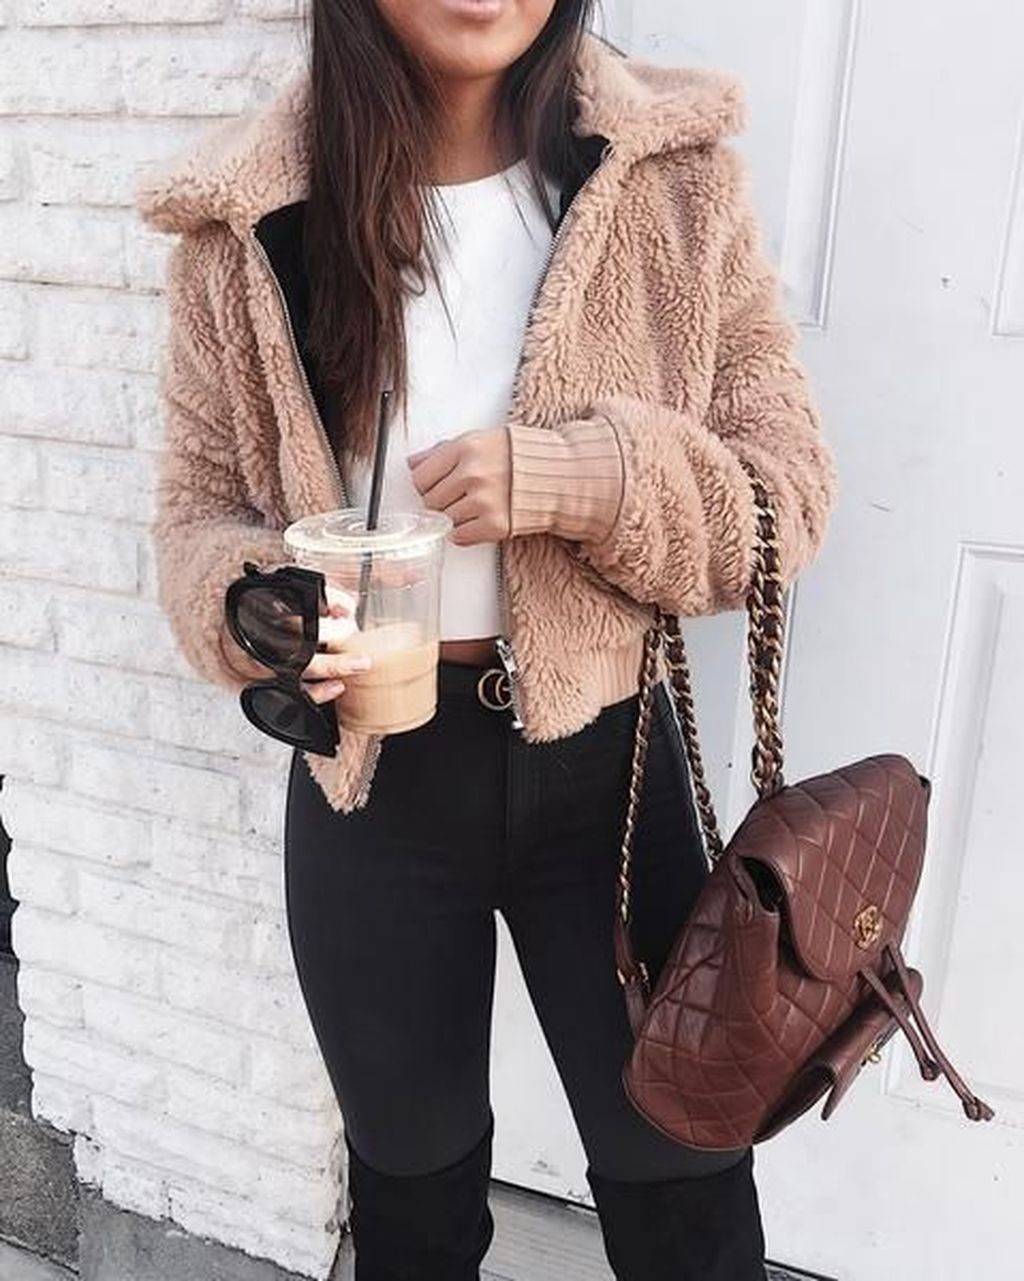 43 Schöne Winter Outfits Ideen Mädchennacht   – Women Fashion